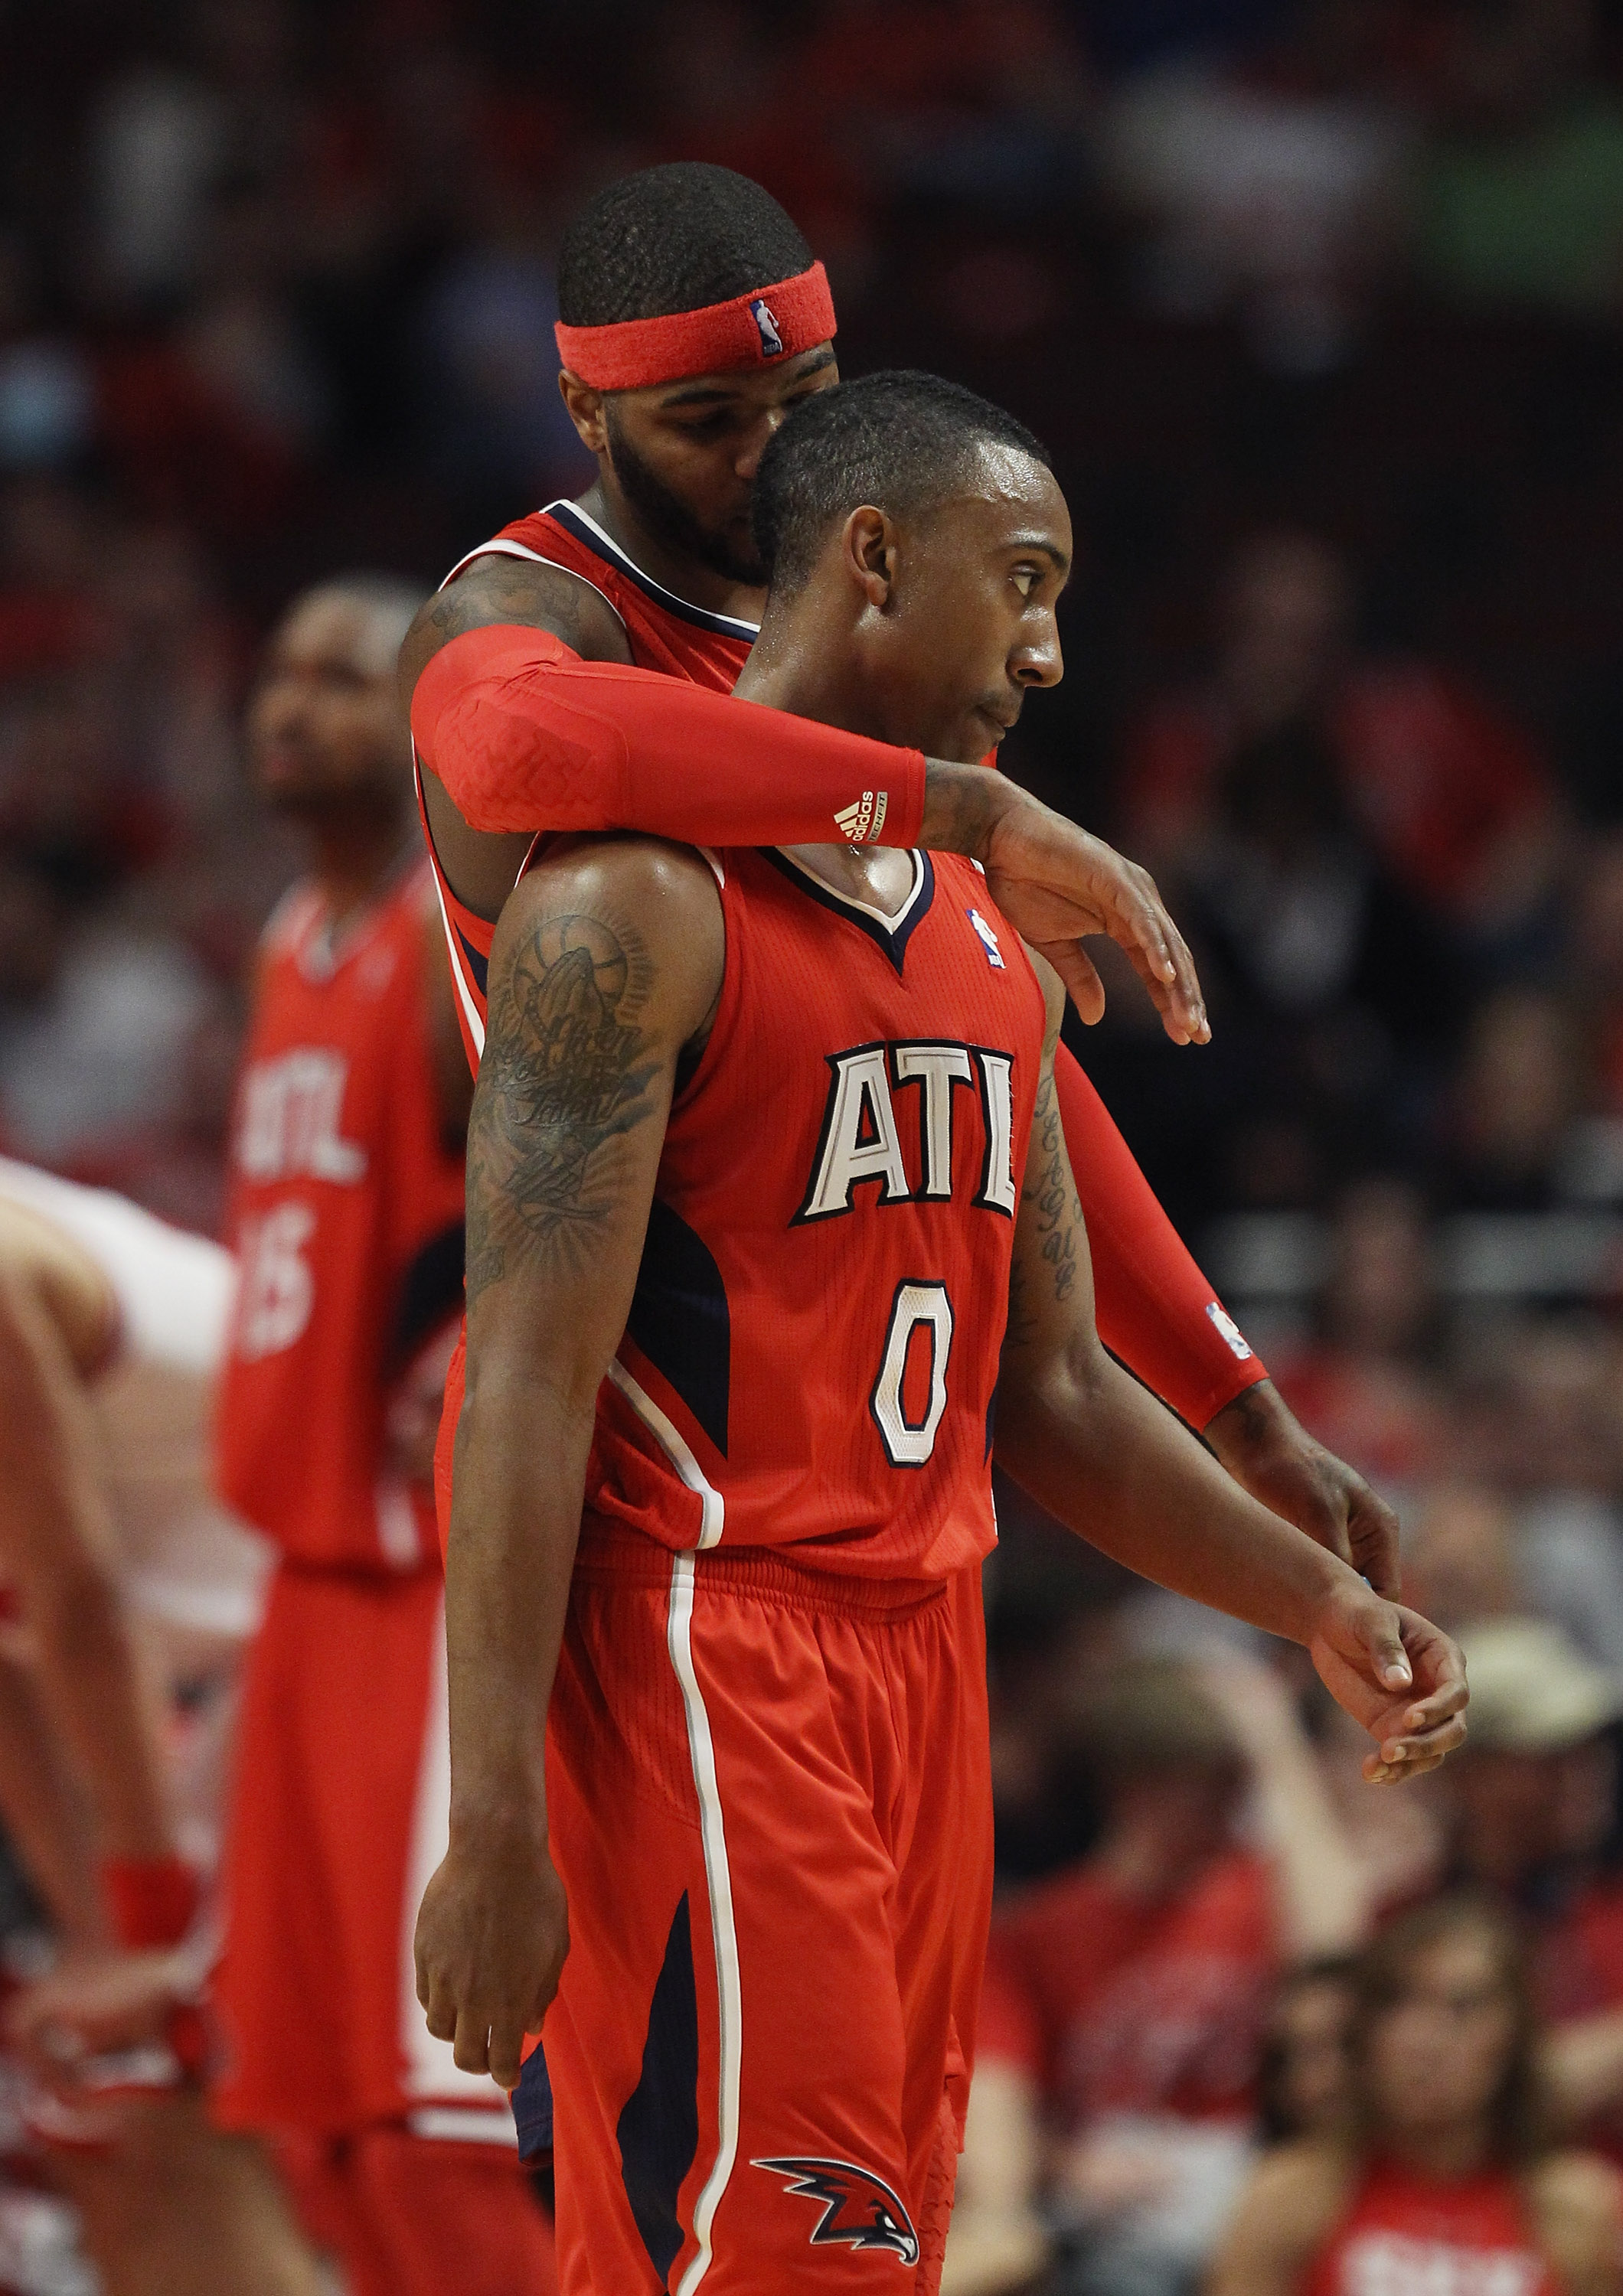 CHICAGO, IL - MAY 02: Josh Smith #5 of the Atlanta Hawks hugs teammate Jeff Teague #0 in the closing minute of a win over the Chicago Bulls in Game One of the Eastern Conference Semifinals in the 2011 NBA Playoffs at the United Center on May 2, 2011 in Ch